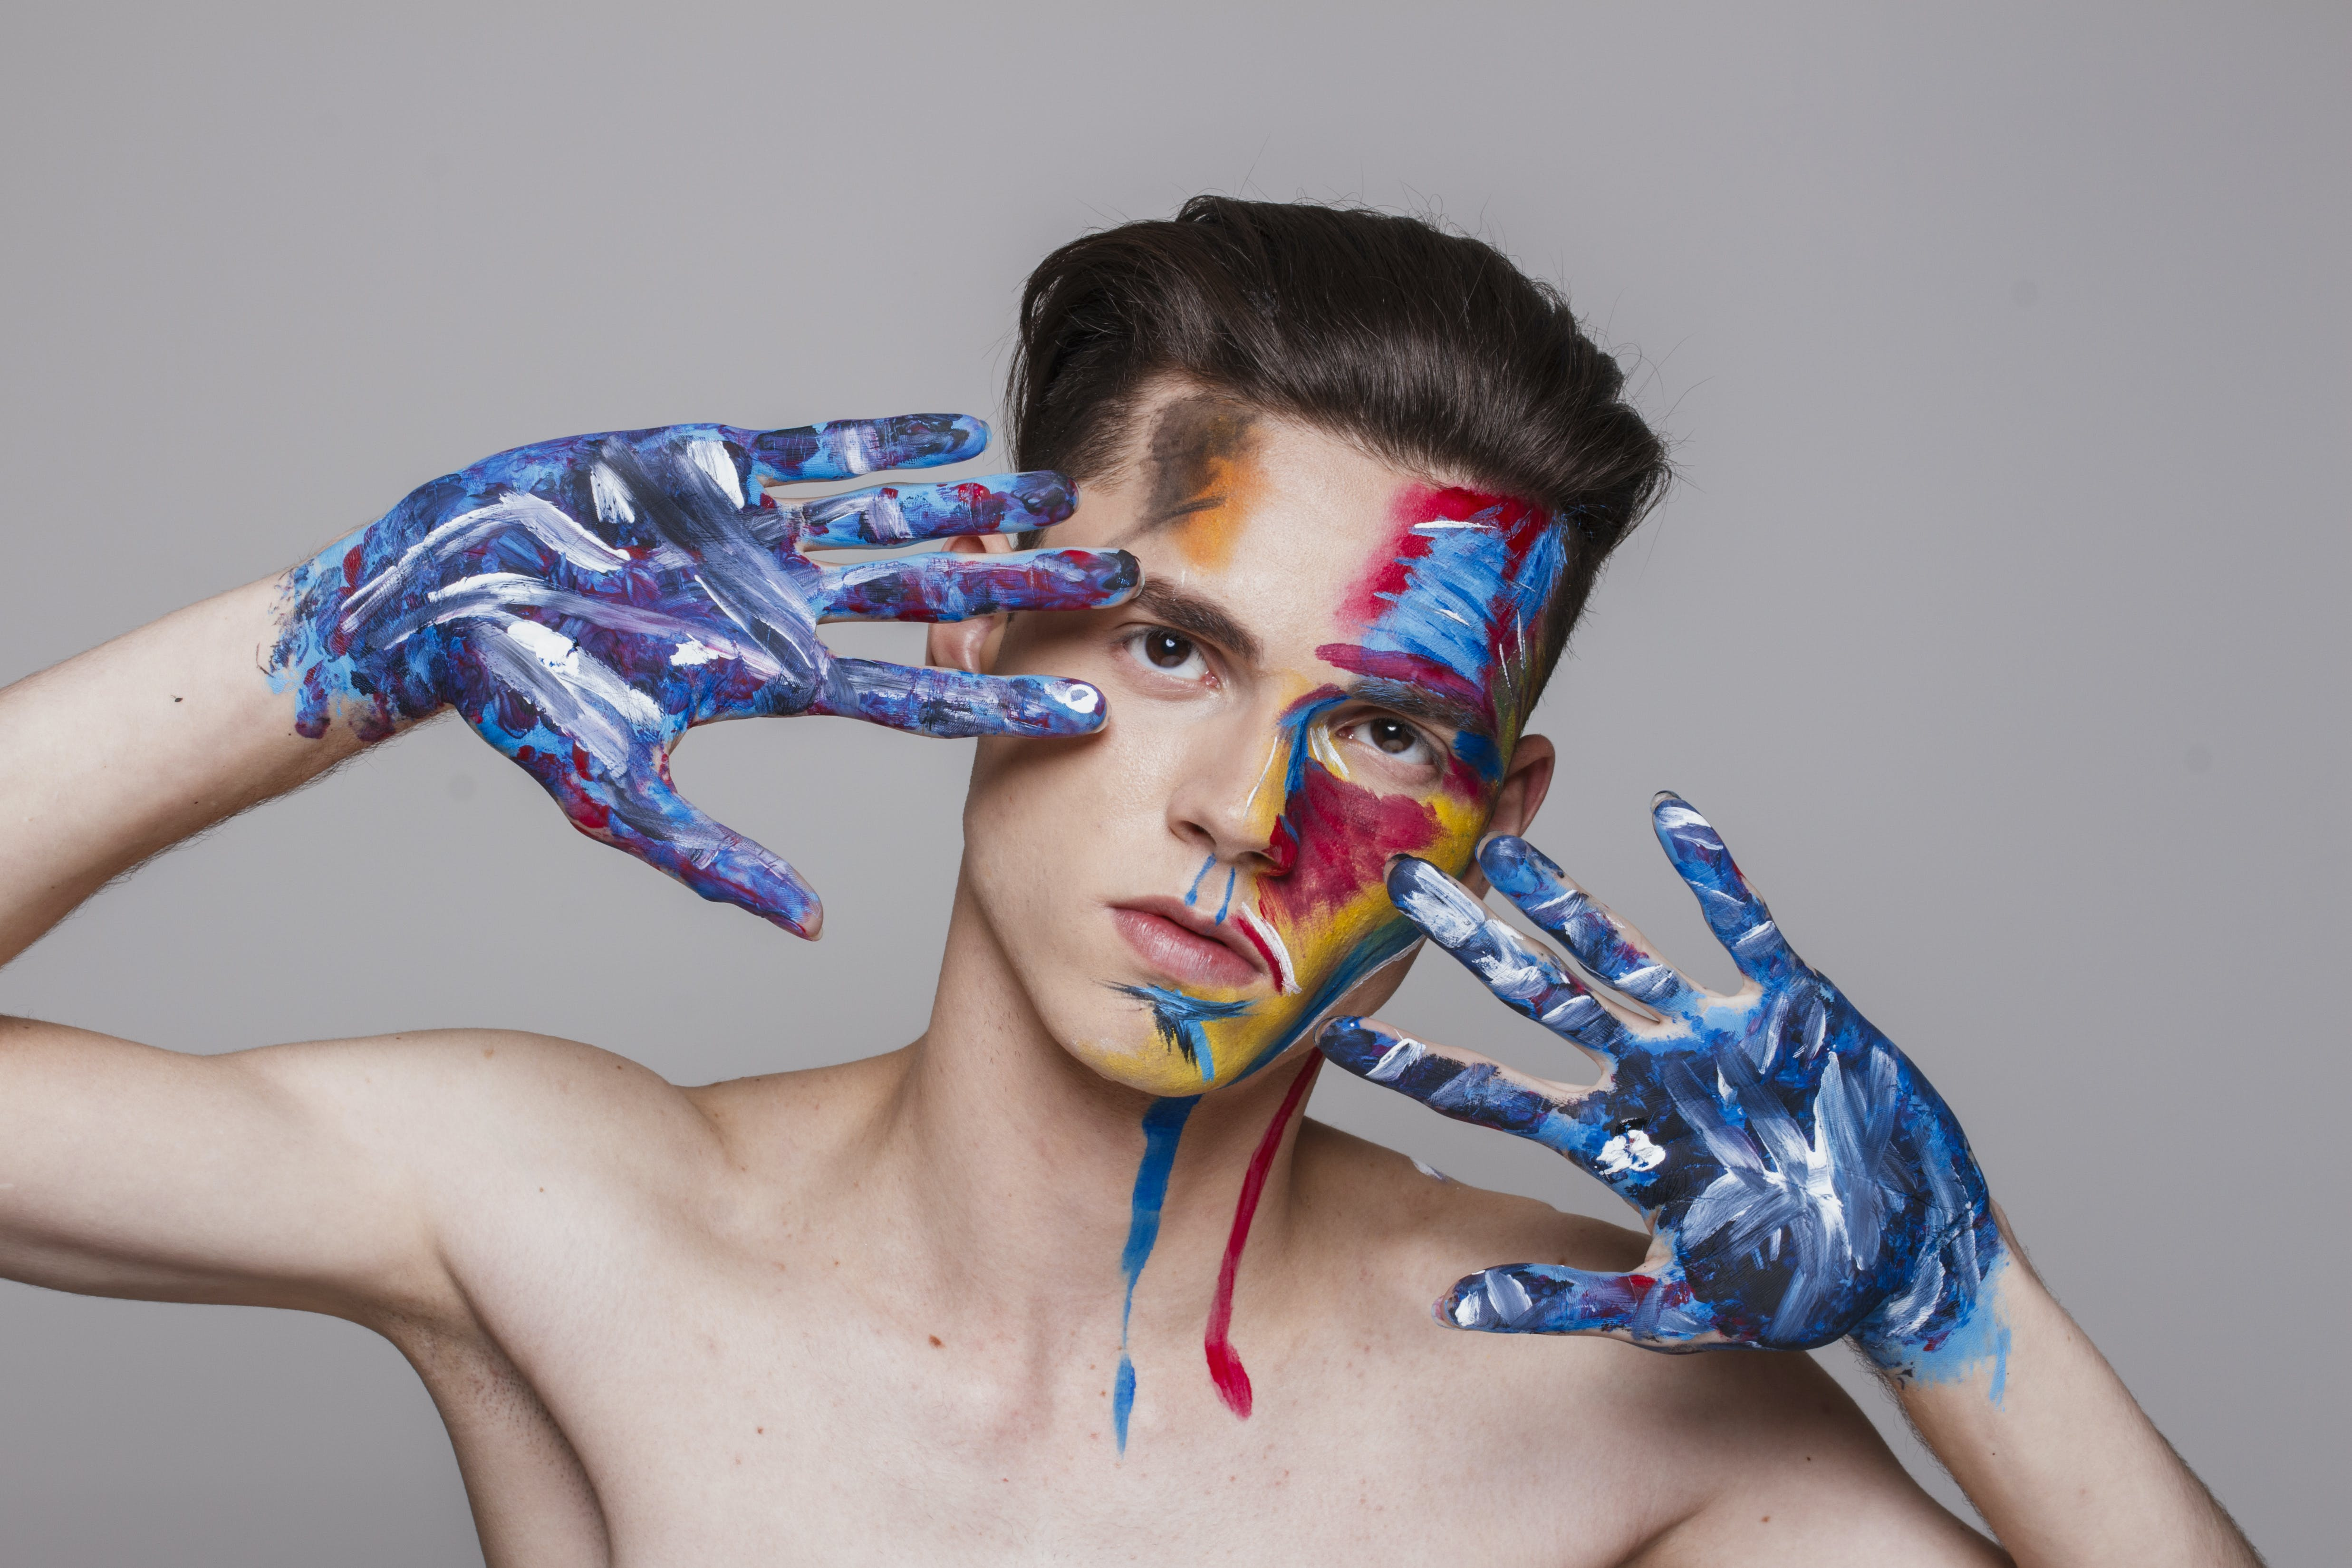 Man With Paint on Face and Hands